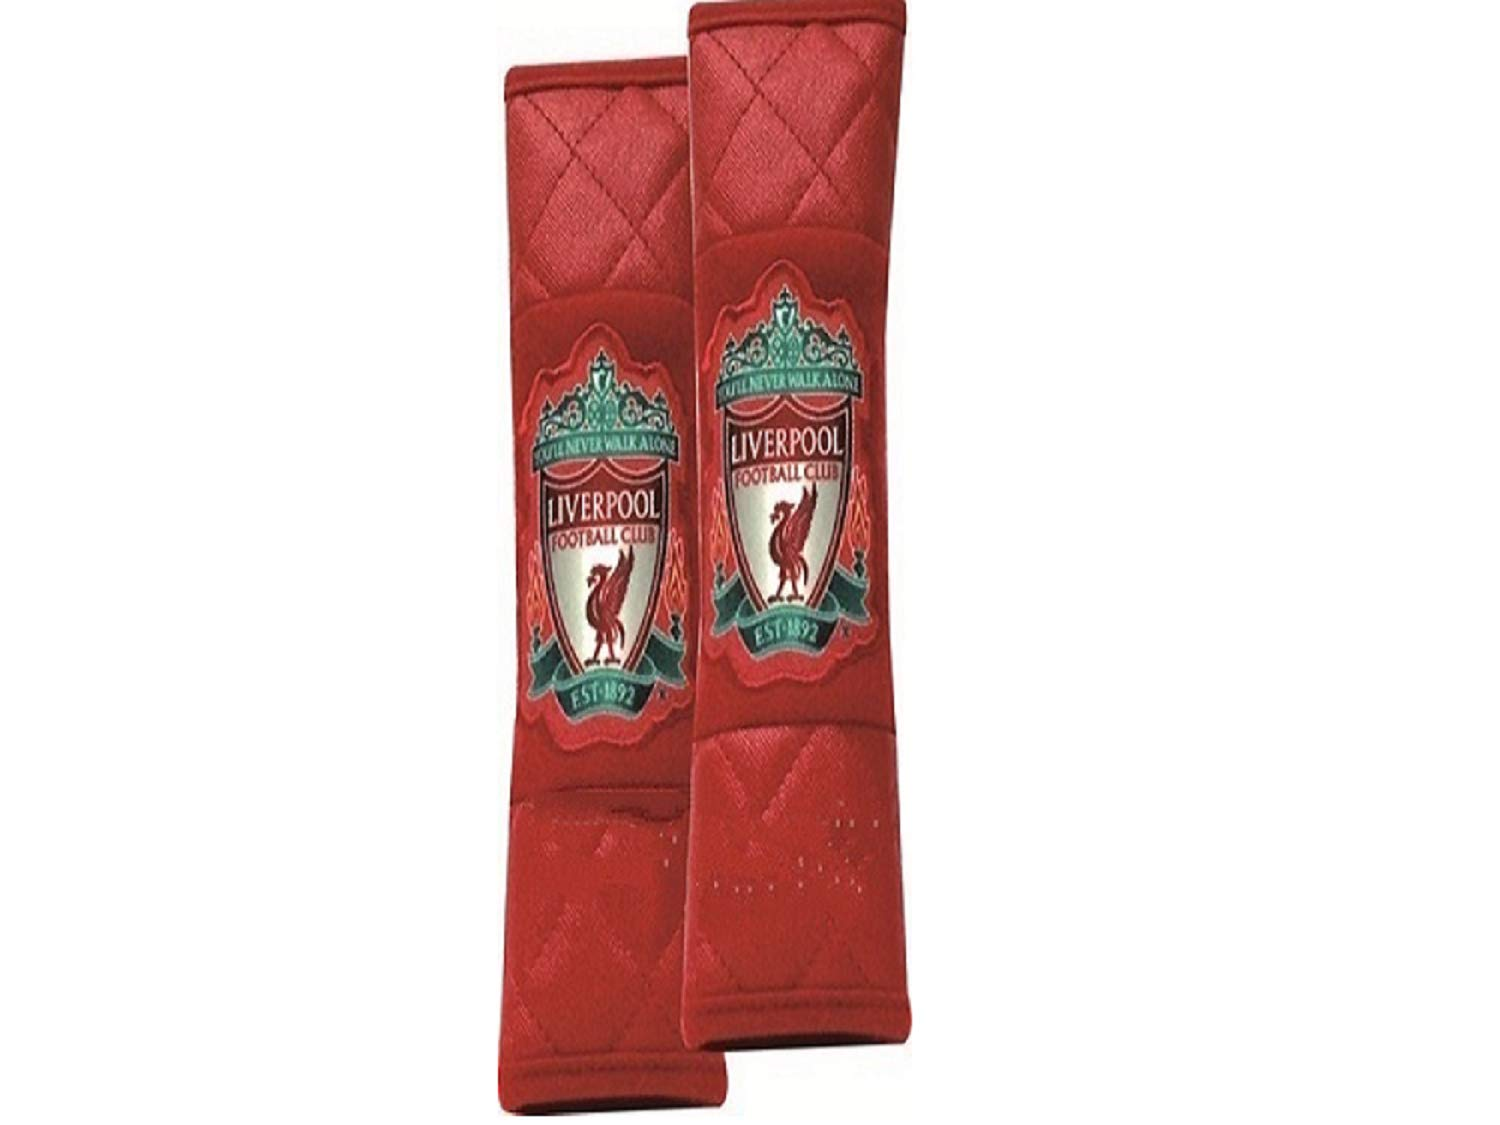 Official Liverpool FC Seat Belt Covers pair exclusive edition